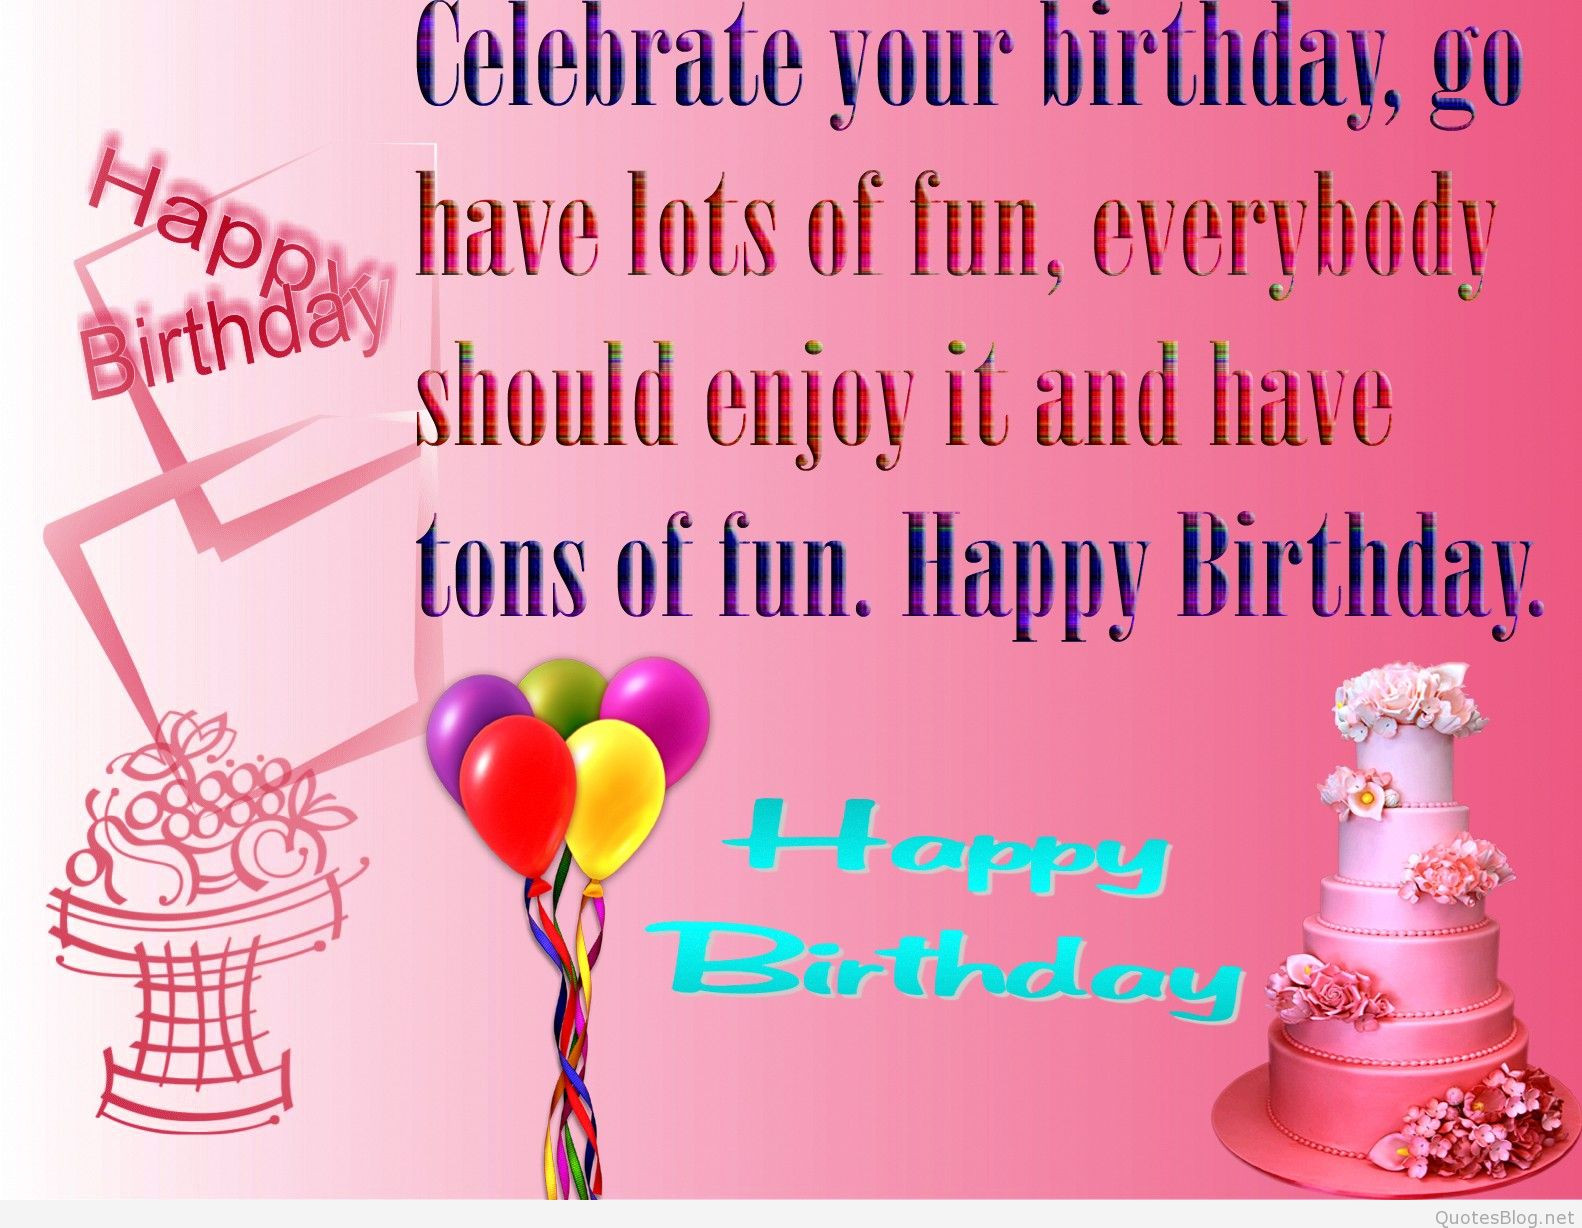 Best ideas about Quote Birthday Wishes . Save or Pin Happy Birthday Wishes for the Day Now.